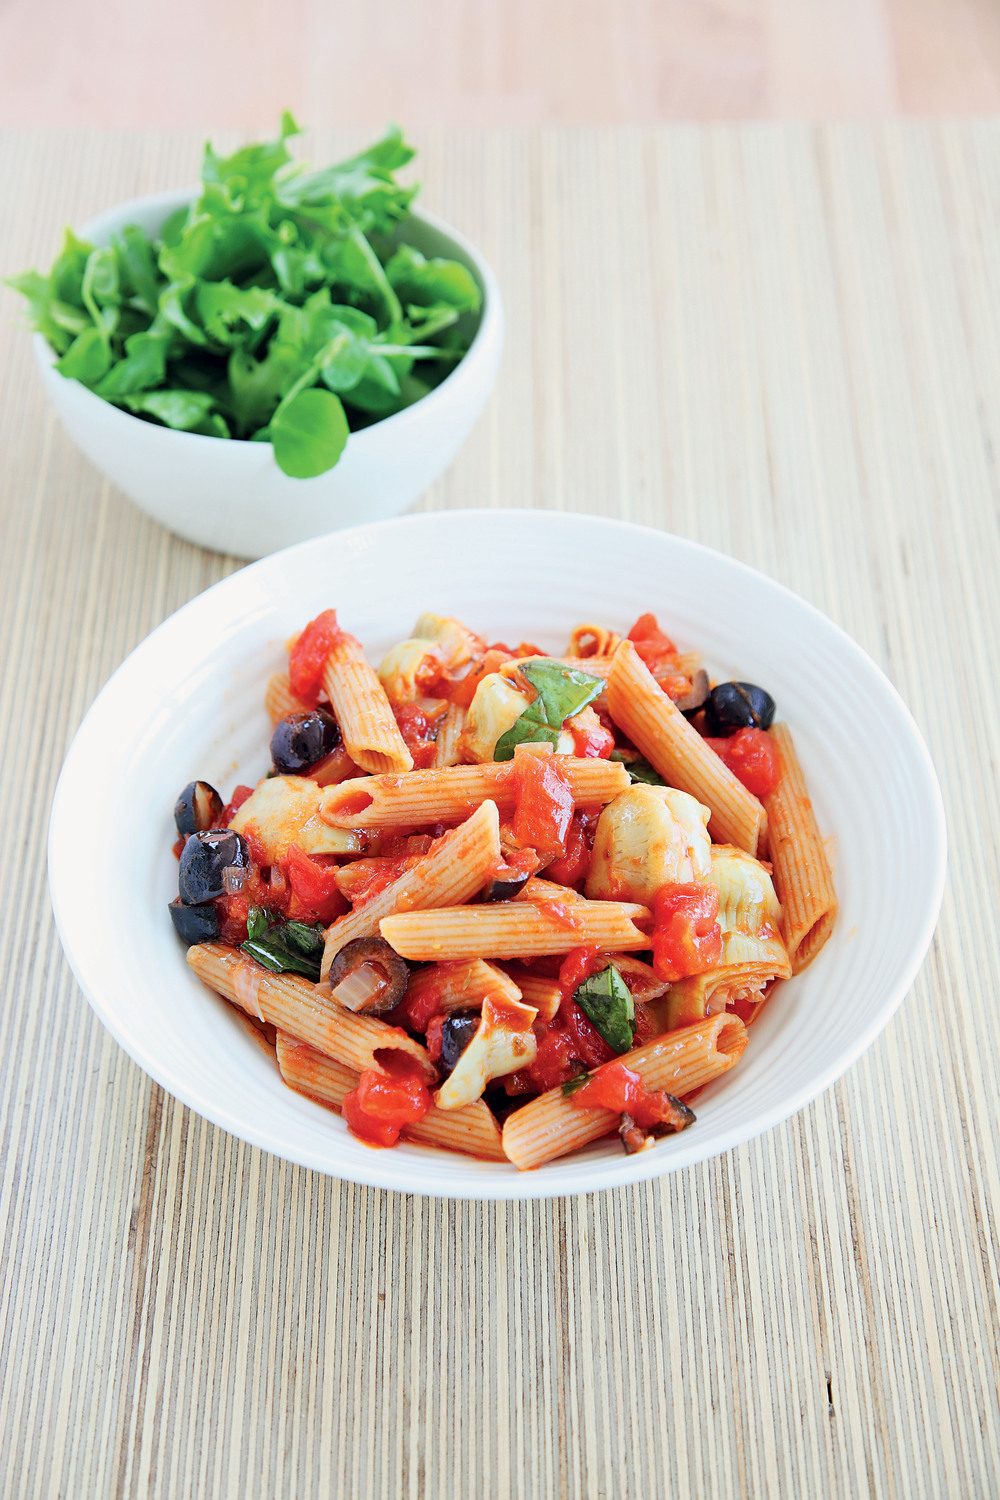 Wholewheat Penne in a Tomato, Artichoke and Olive Sauce